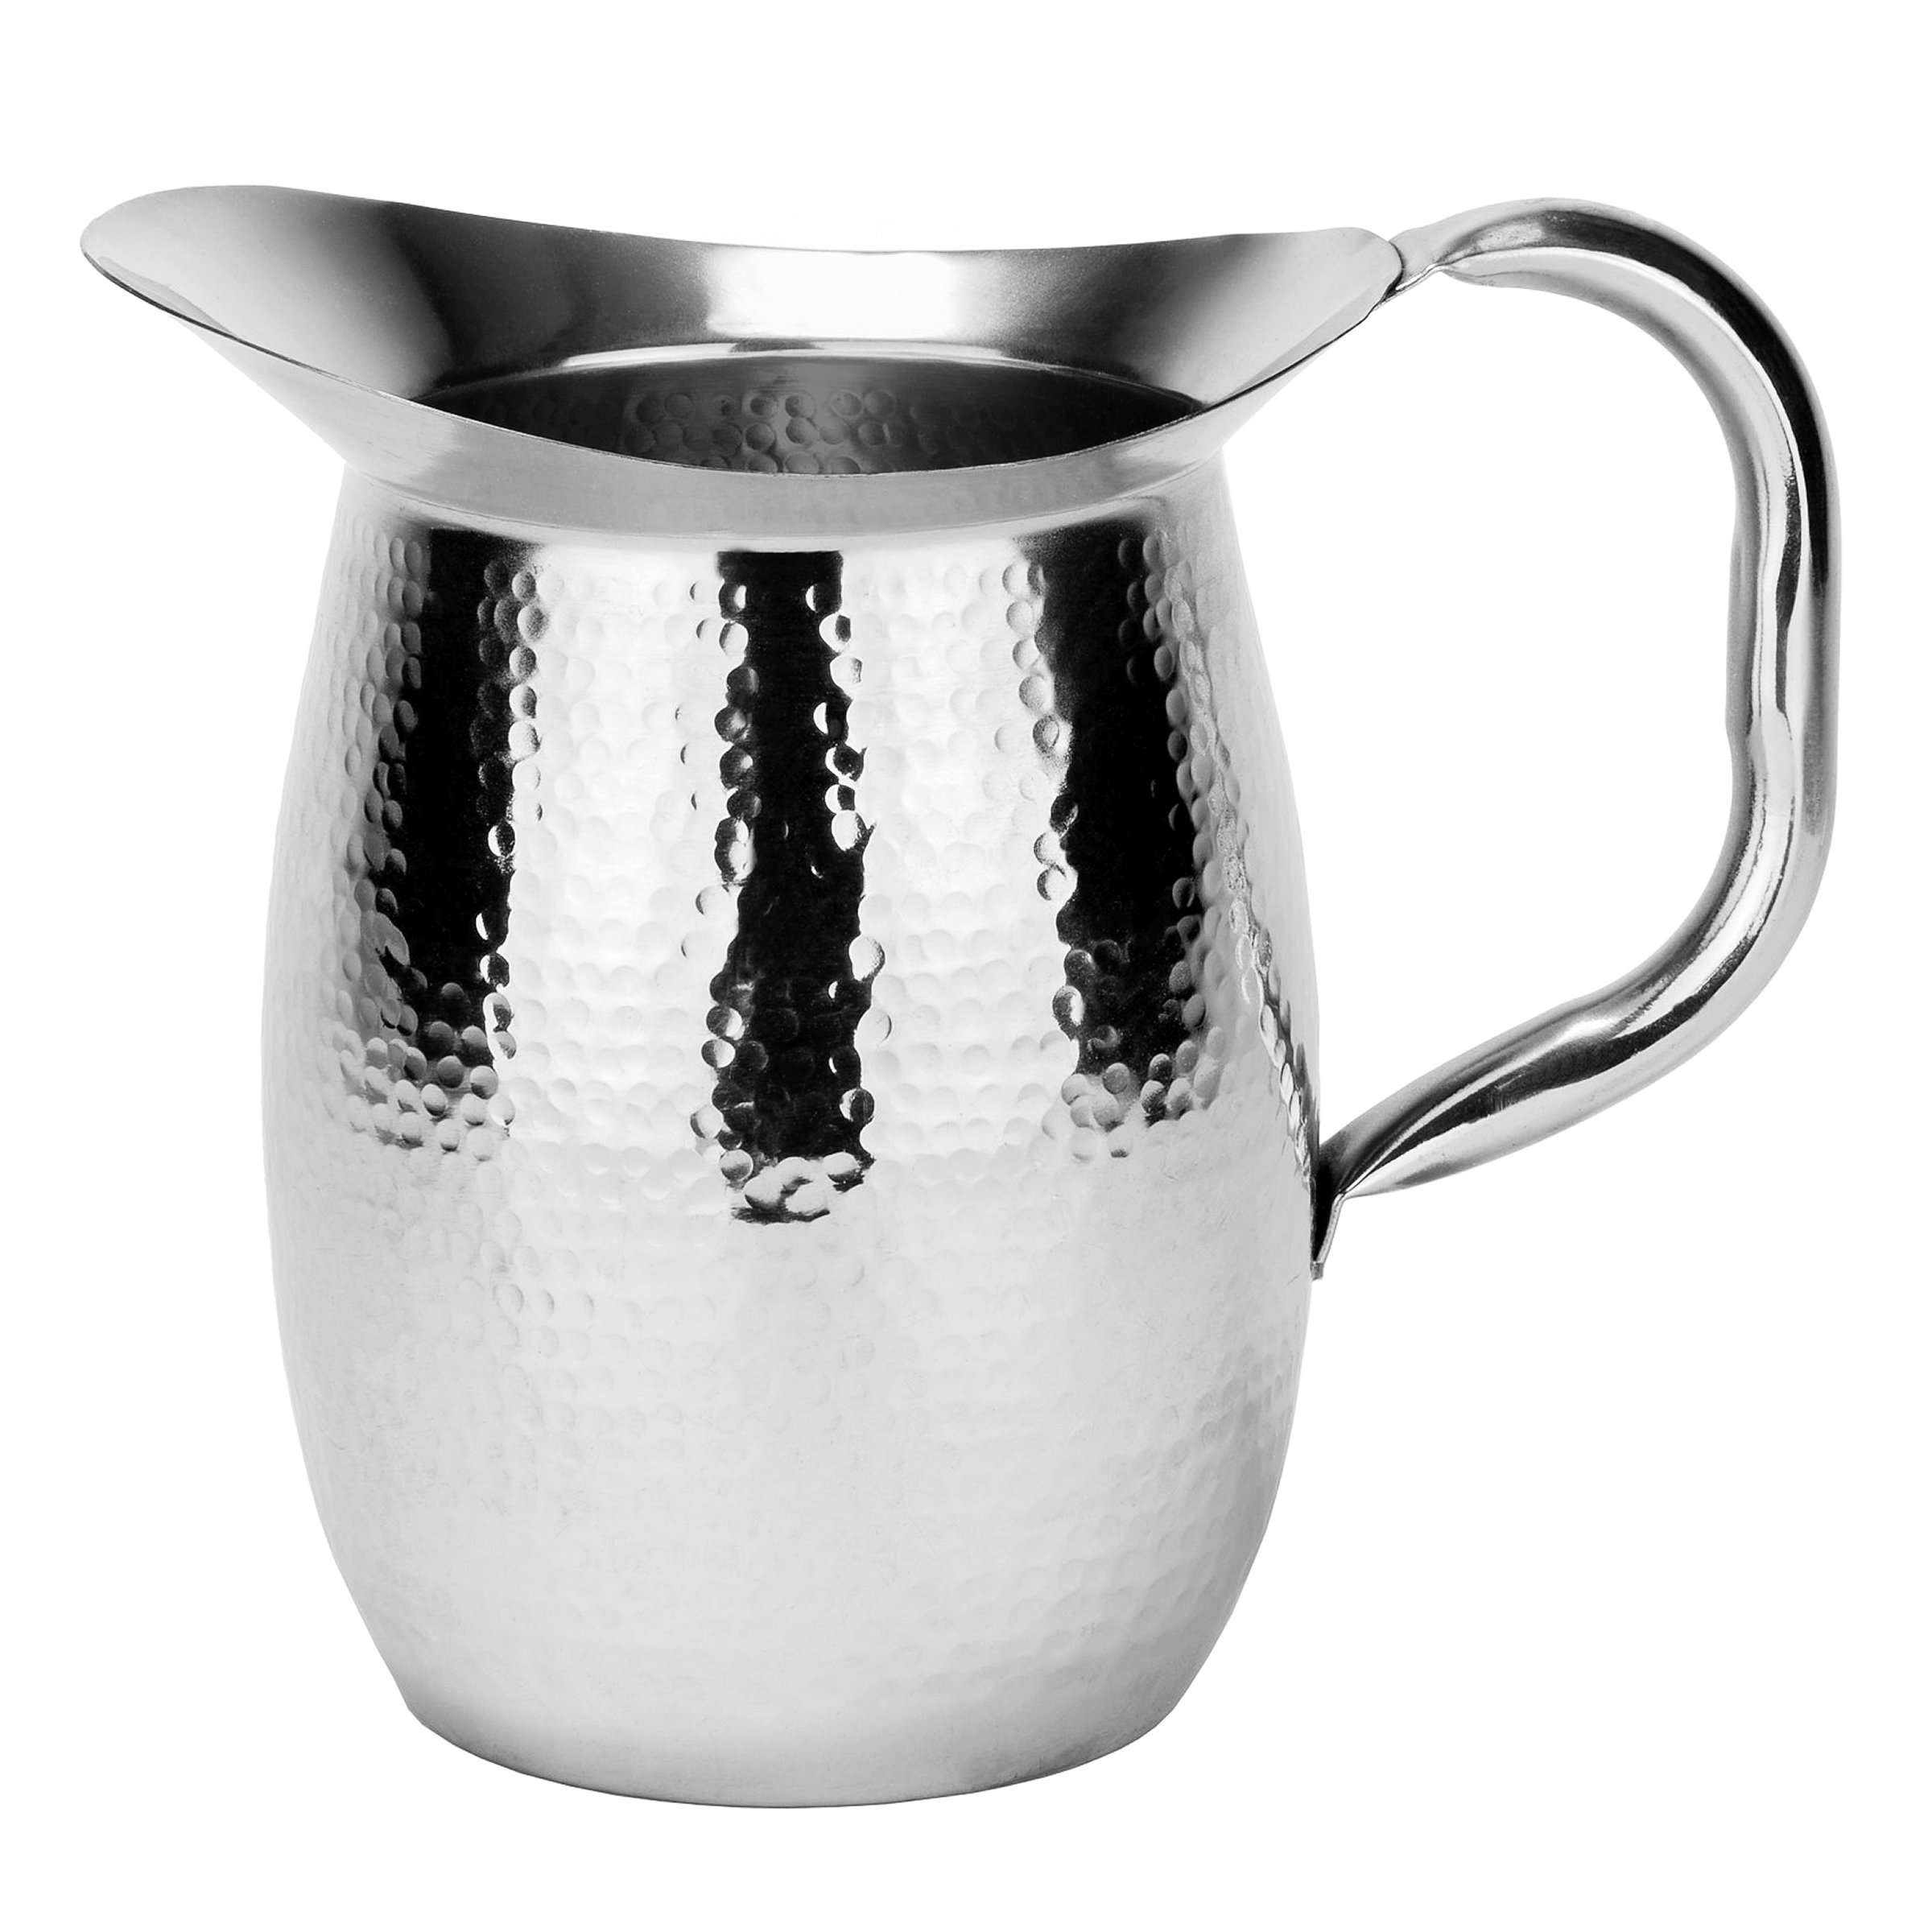 Double-Walled Hammered Stainless Steel Water Pitcher, 2 Qt by Old Dutch